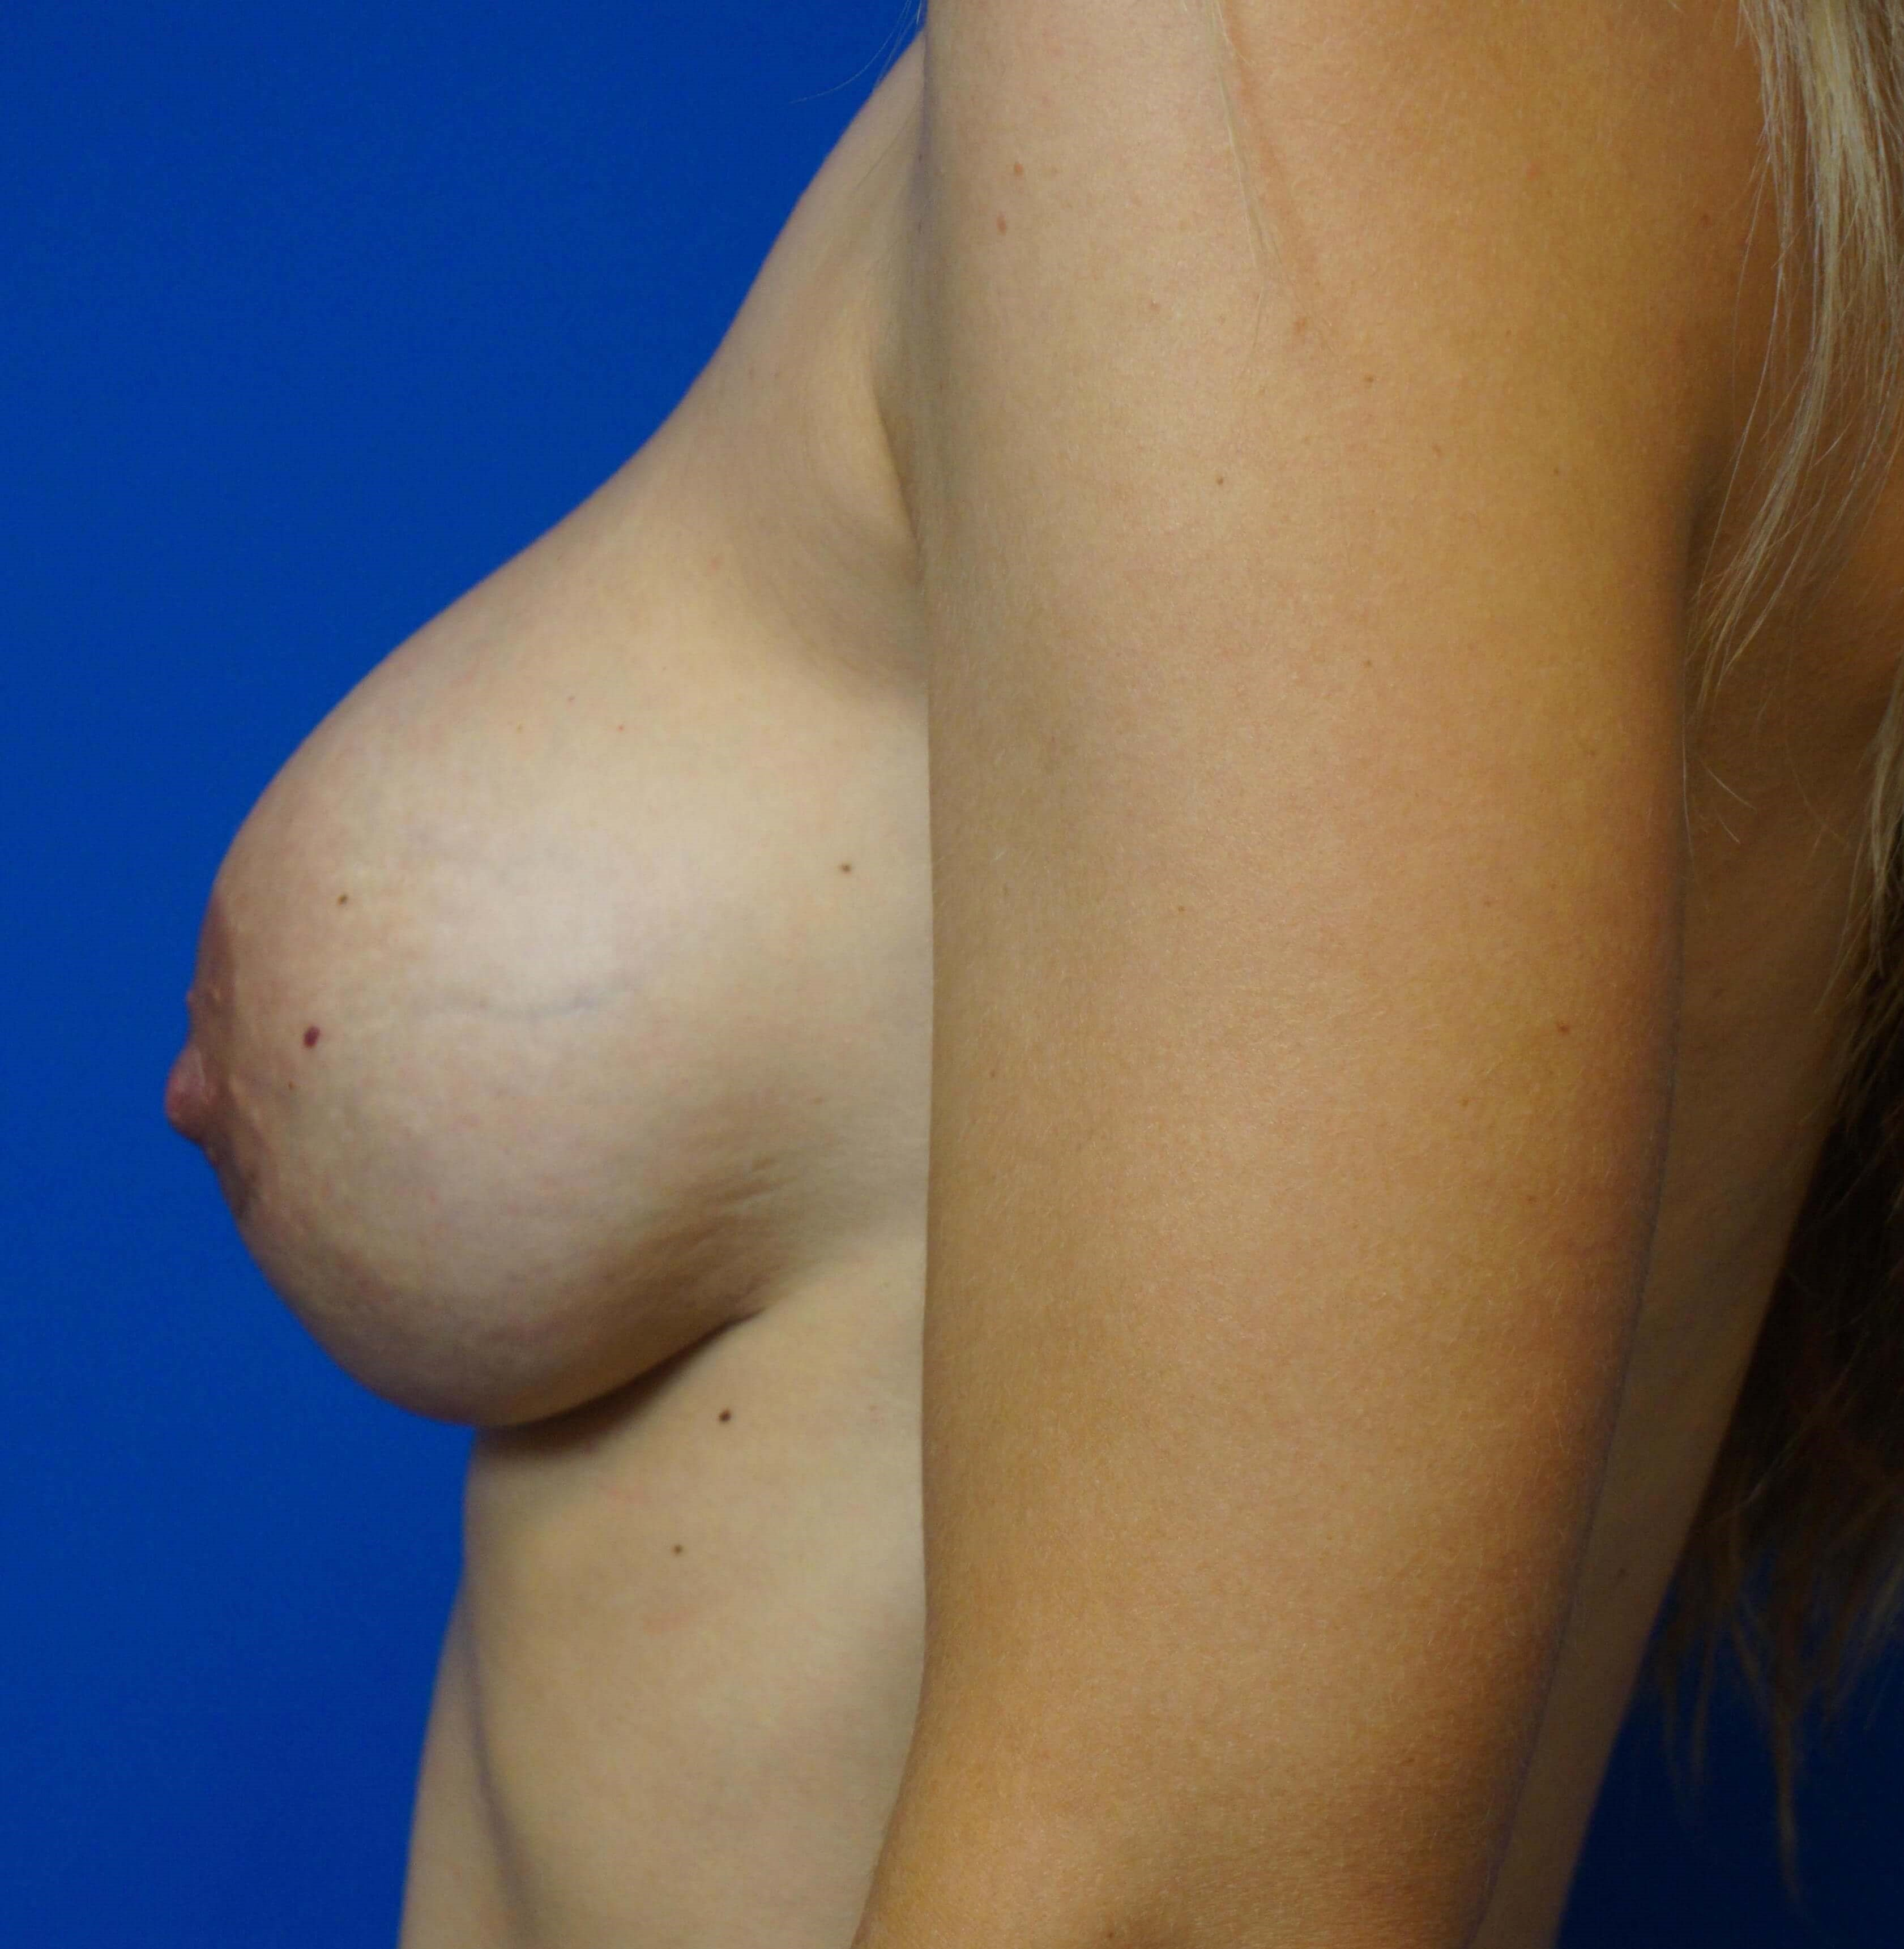 Breast Revision with GalaFlex 6 months postop